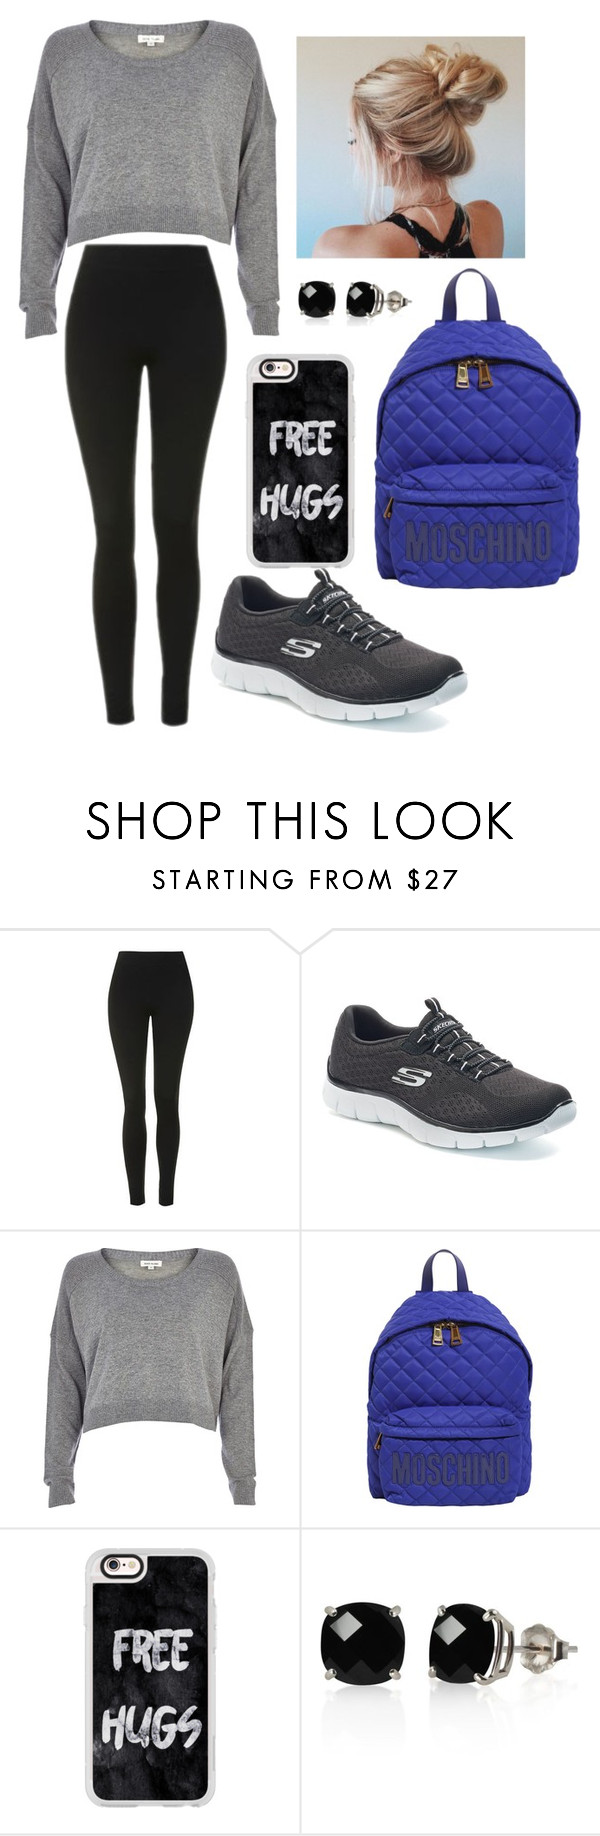 """""""Deportivo"""" by angelica-suarez-1 on Polyvore featuring moda, Topshop, Skechers, River Island, Moschino, Casetify y Belk & Co."""